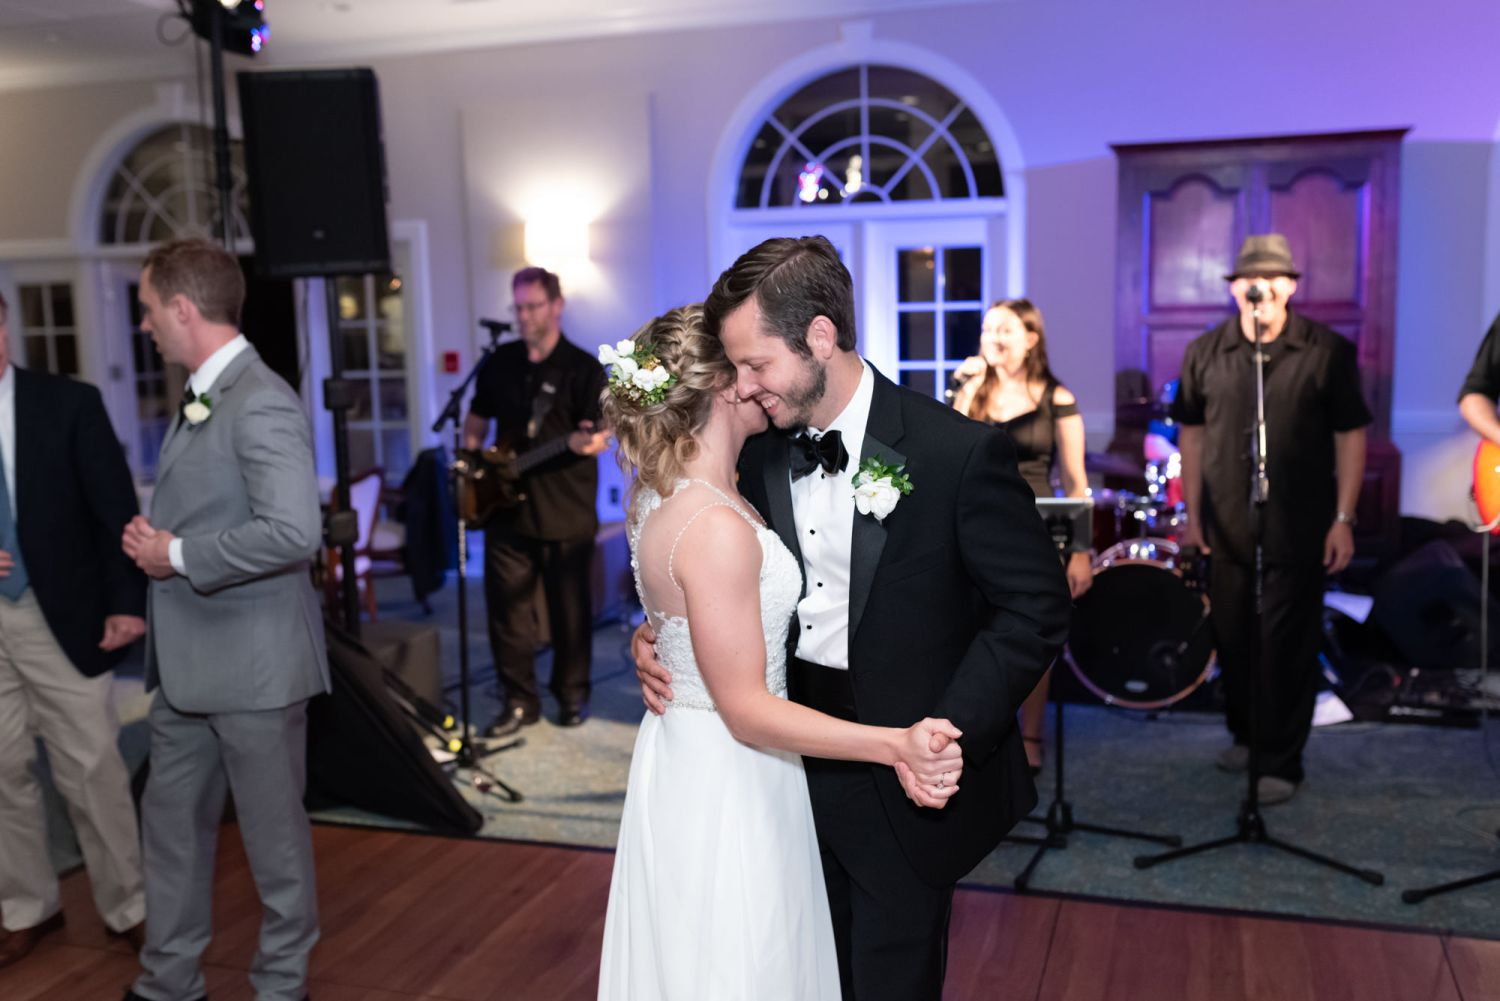 Bride and groom dancing at end of reception - Wachesaw Plantation